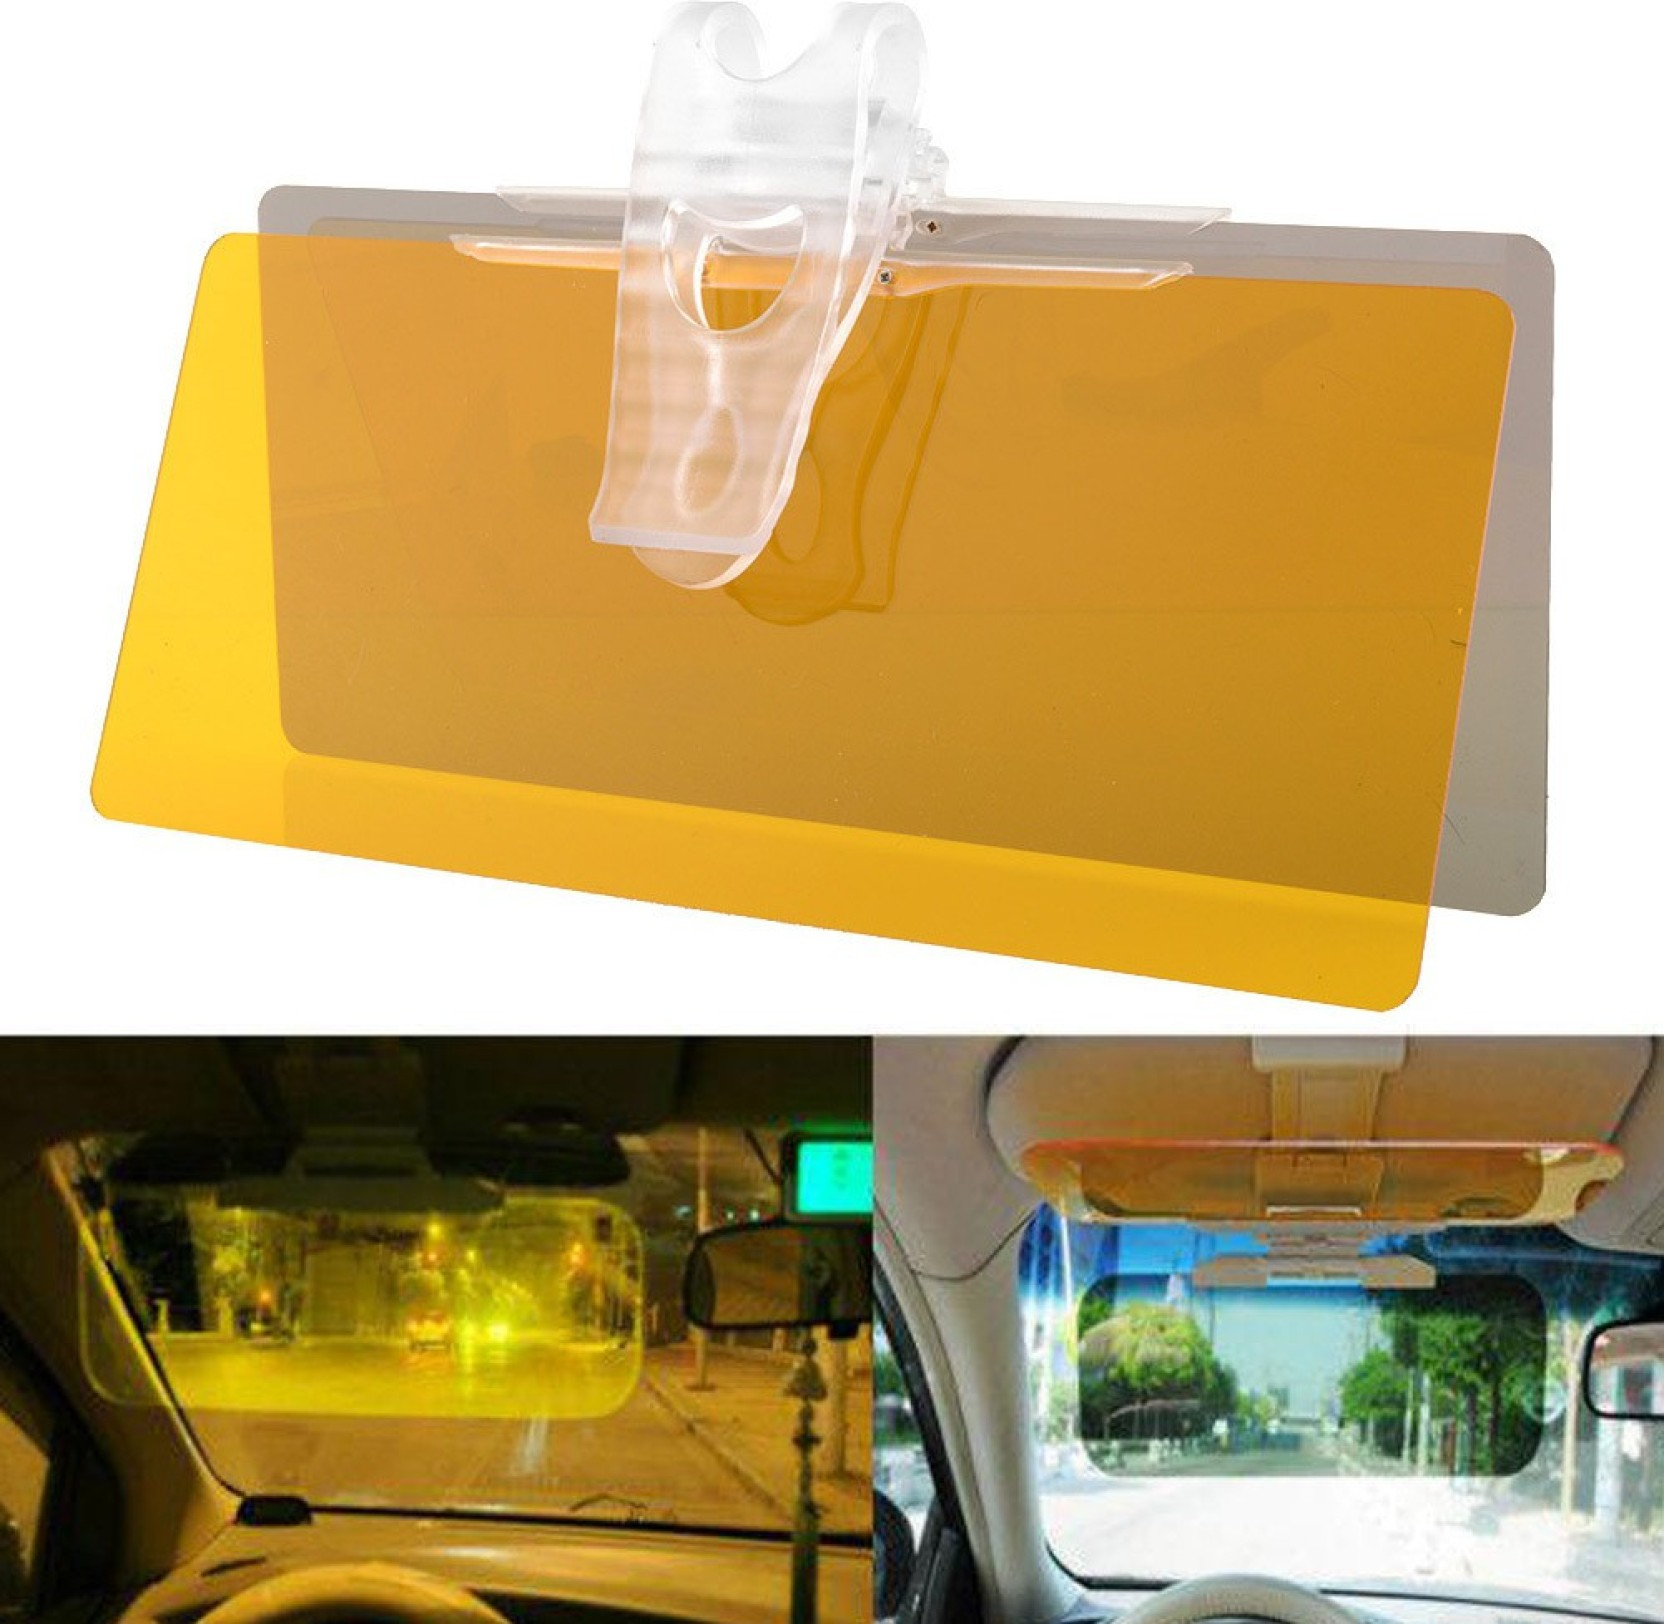 IBS Sun Roof Sun Shade For Universal For Car Universal For Car Price ... 78e9187fd07